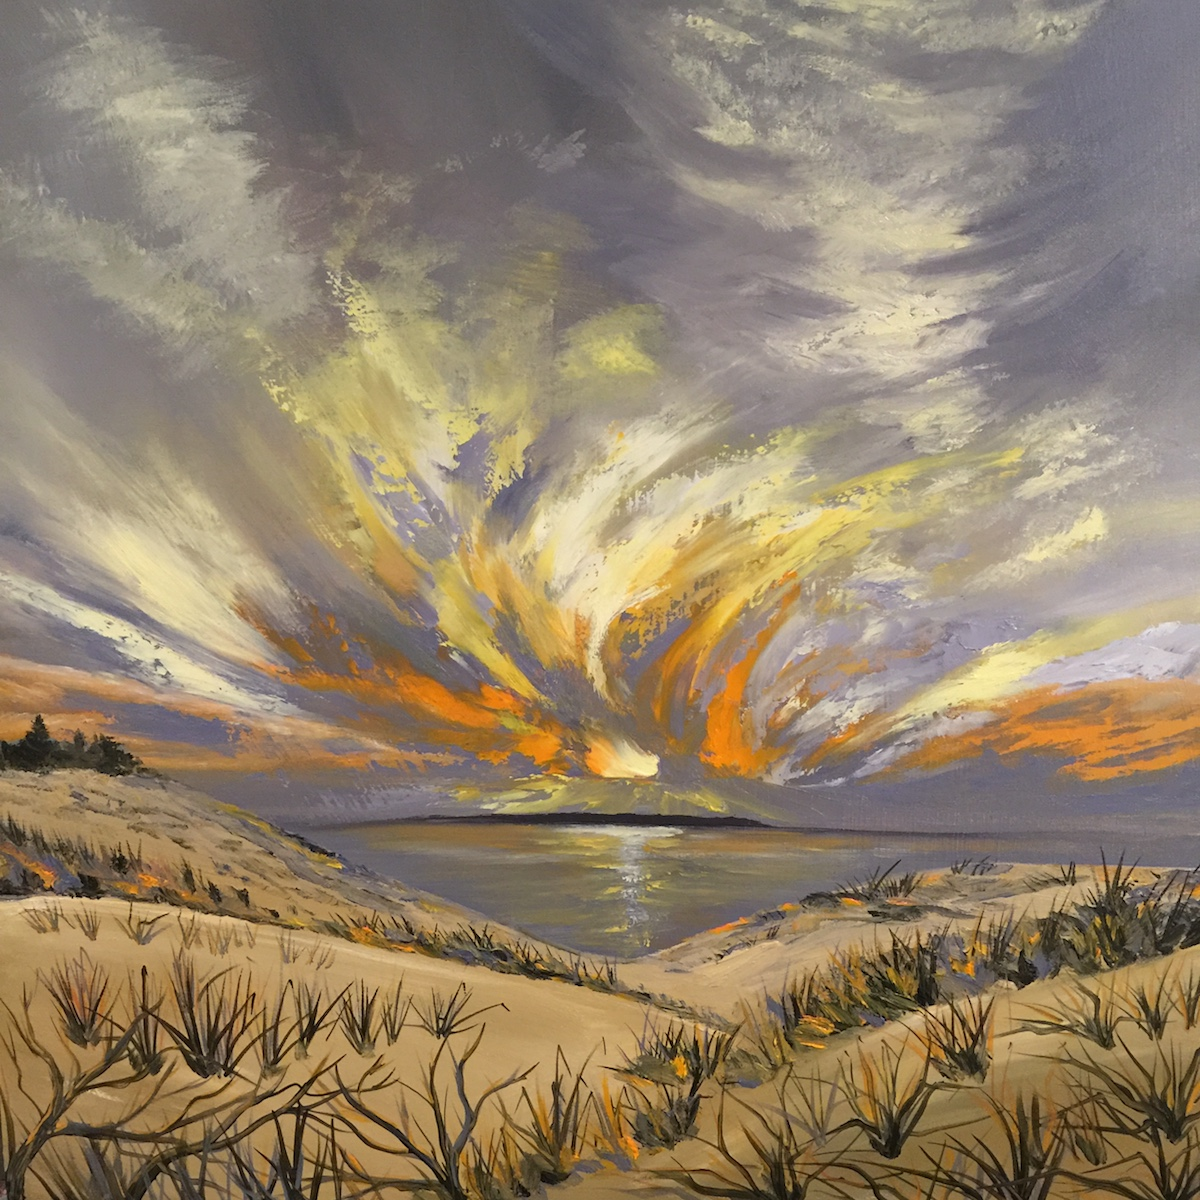 Wild Sky From The Dunes - Painting by Stephanie Schlatter